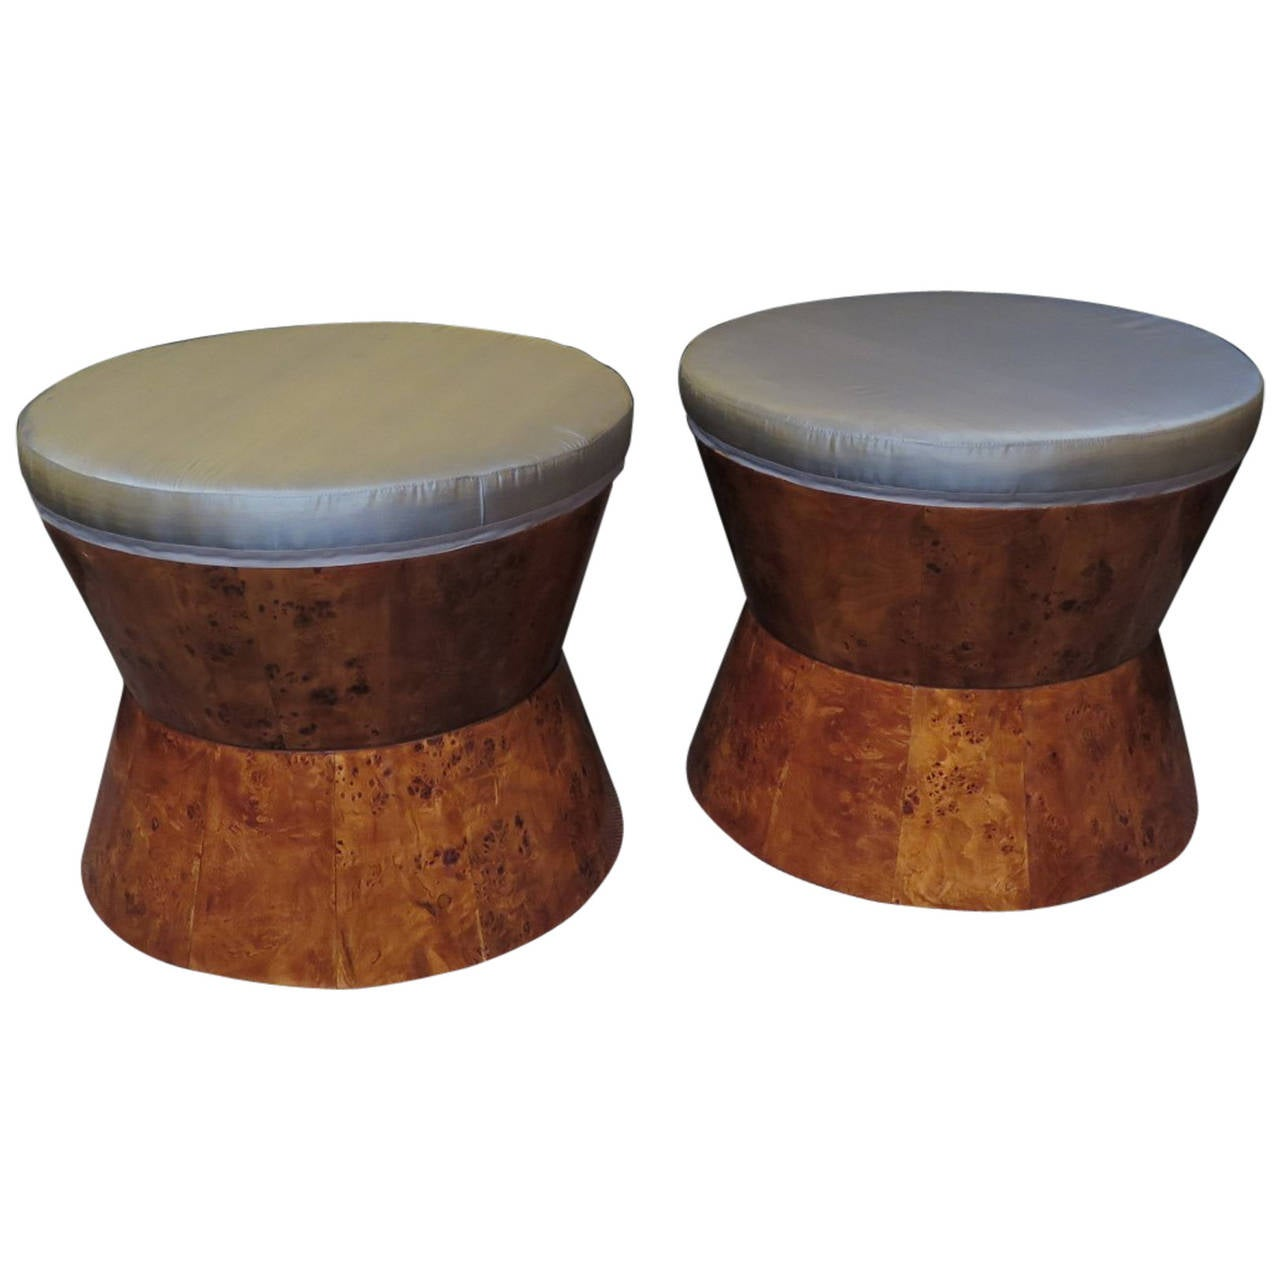 Pair Of Art Deco Stools At 1stdibs